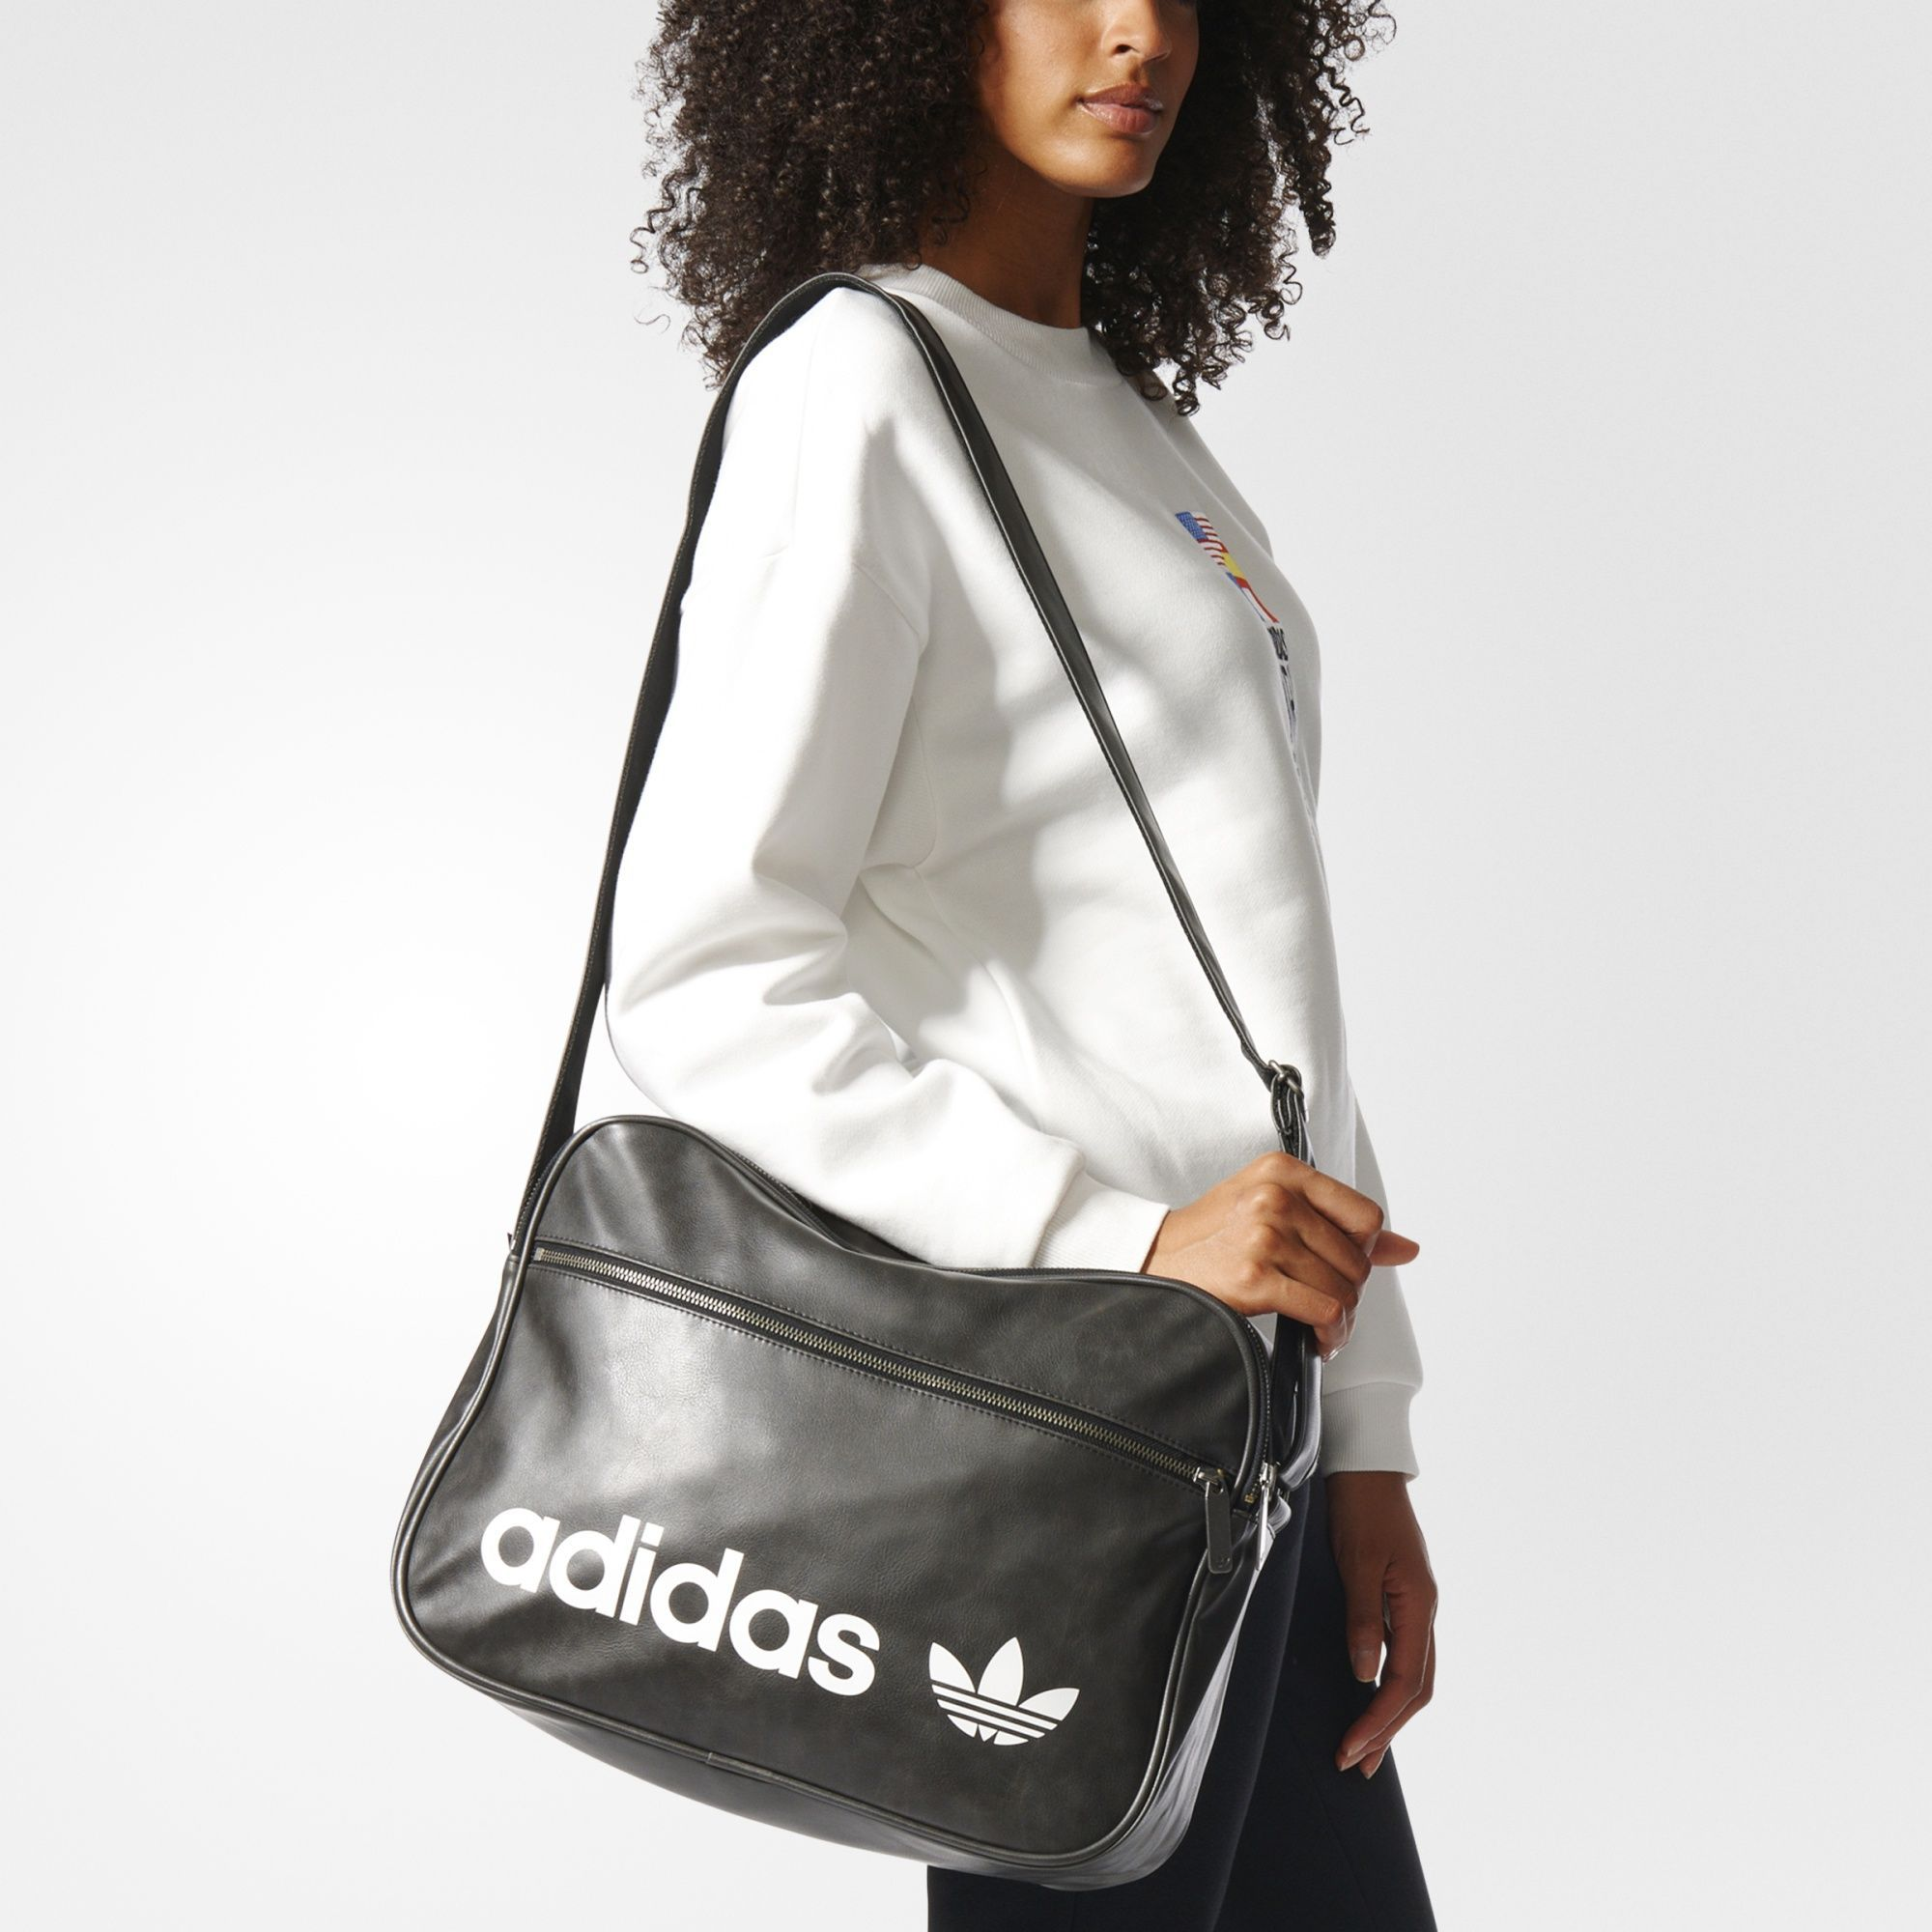 Adidas Vintage Airliner In Likes 2 Bolsa Bags 2019Pinterest qSUzMpV